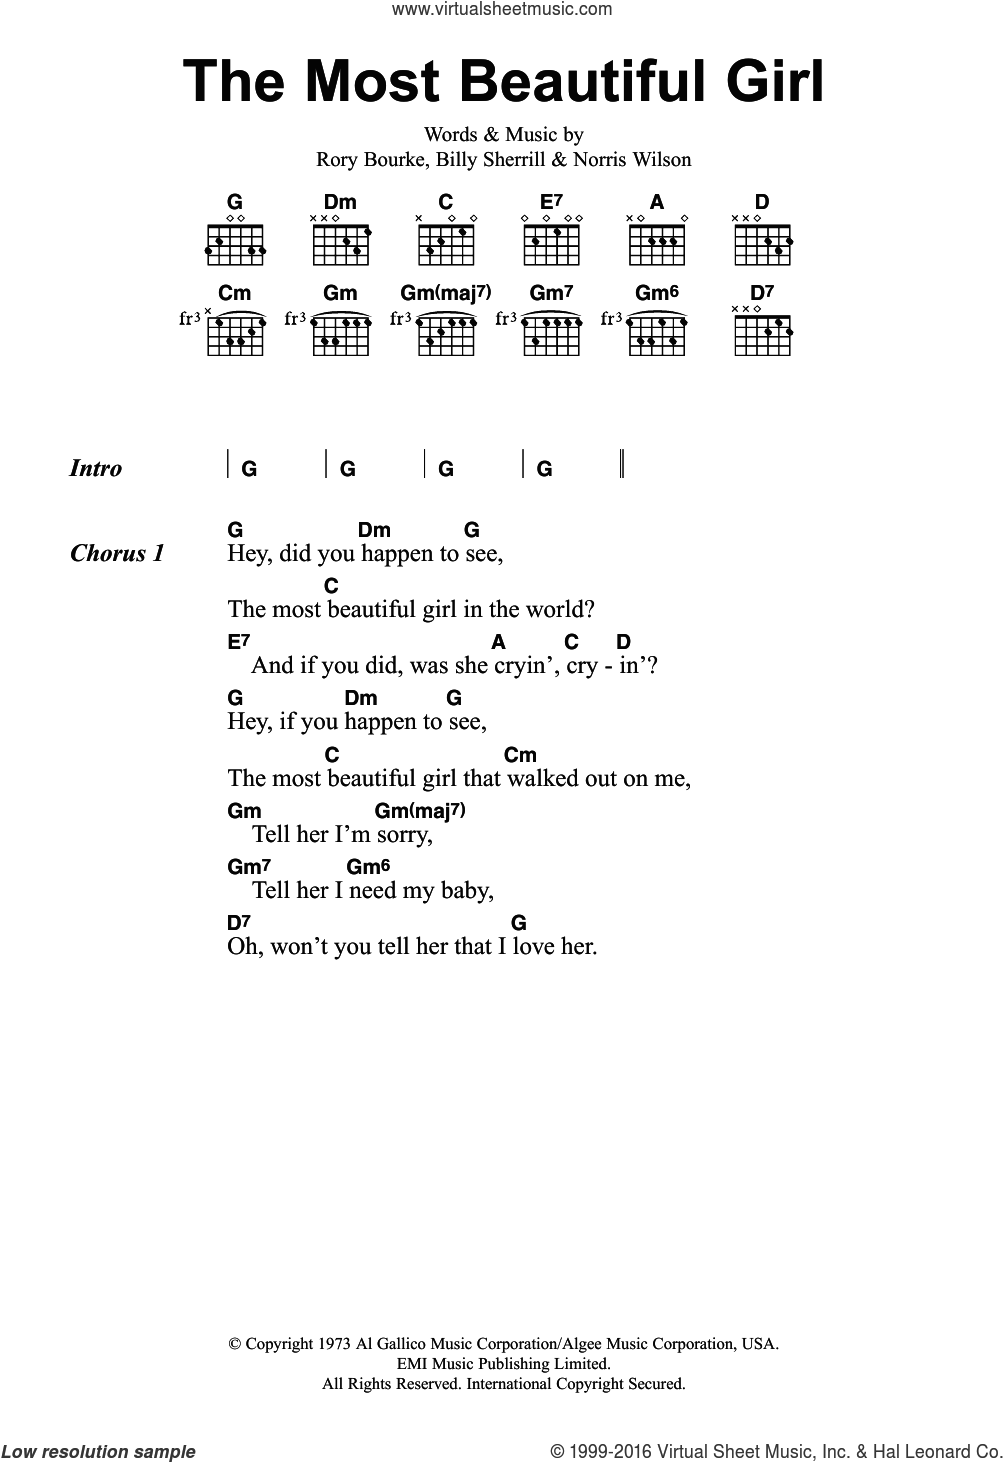 Rich the most beautiful girl sheet music for guitar chords the most beautiful girl sheet music for guitar chords by charlie rich intermediate hexwebz Choice Image